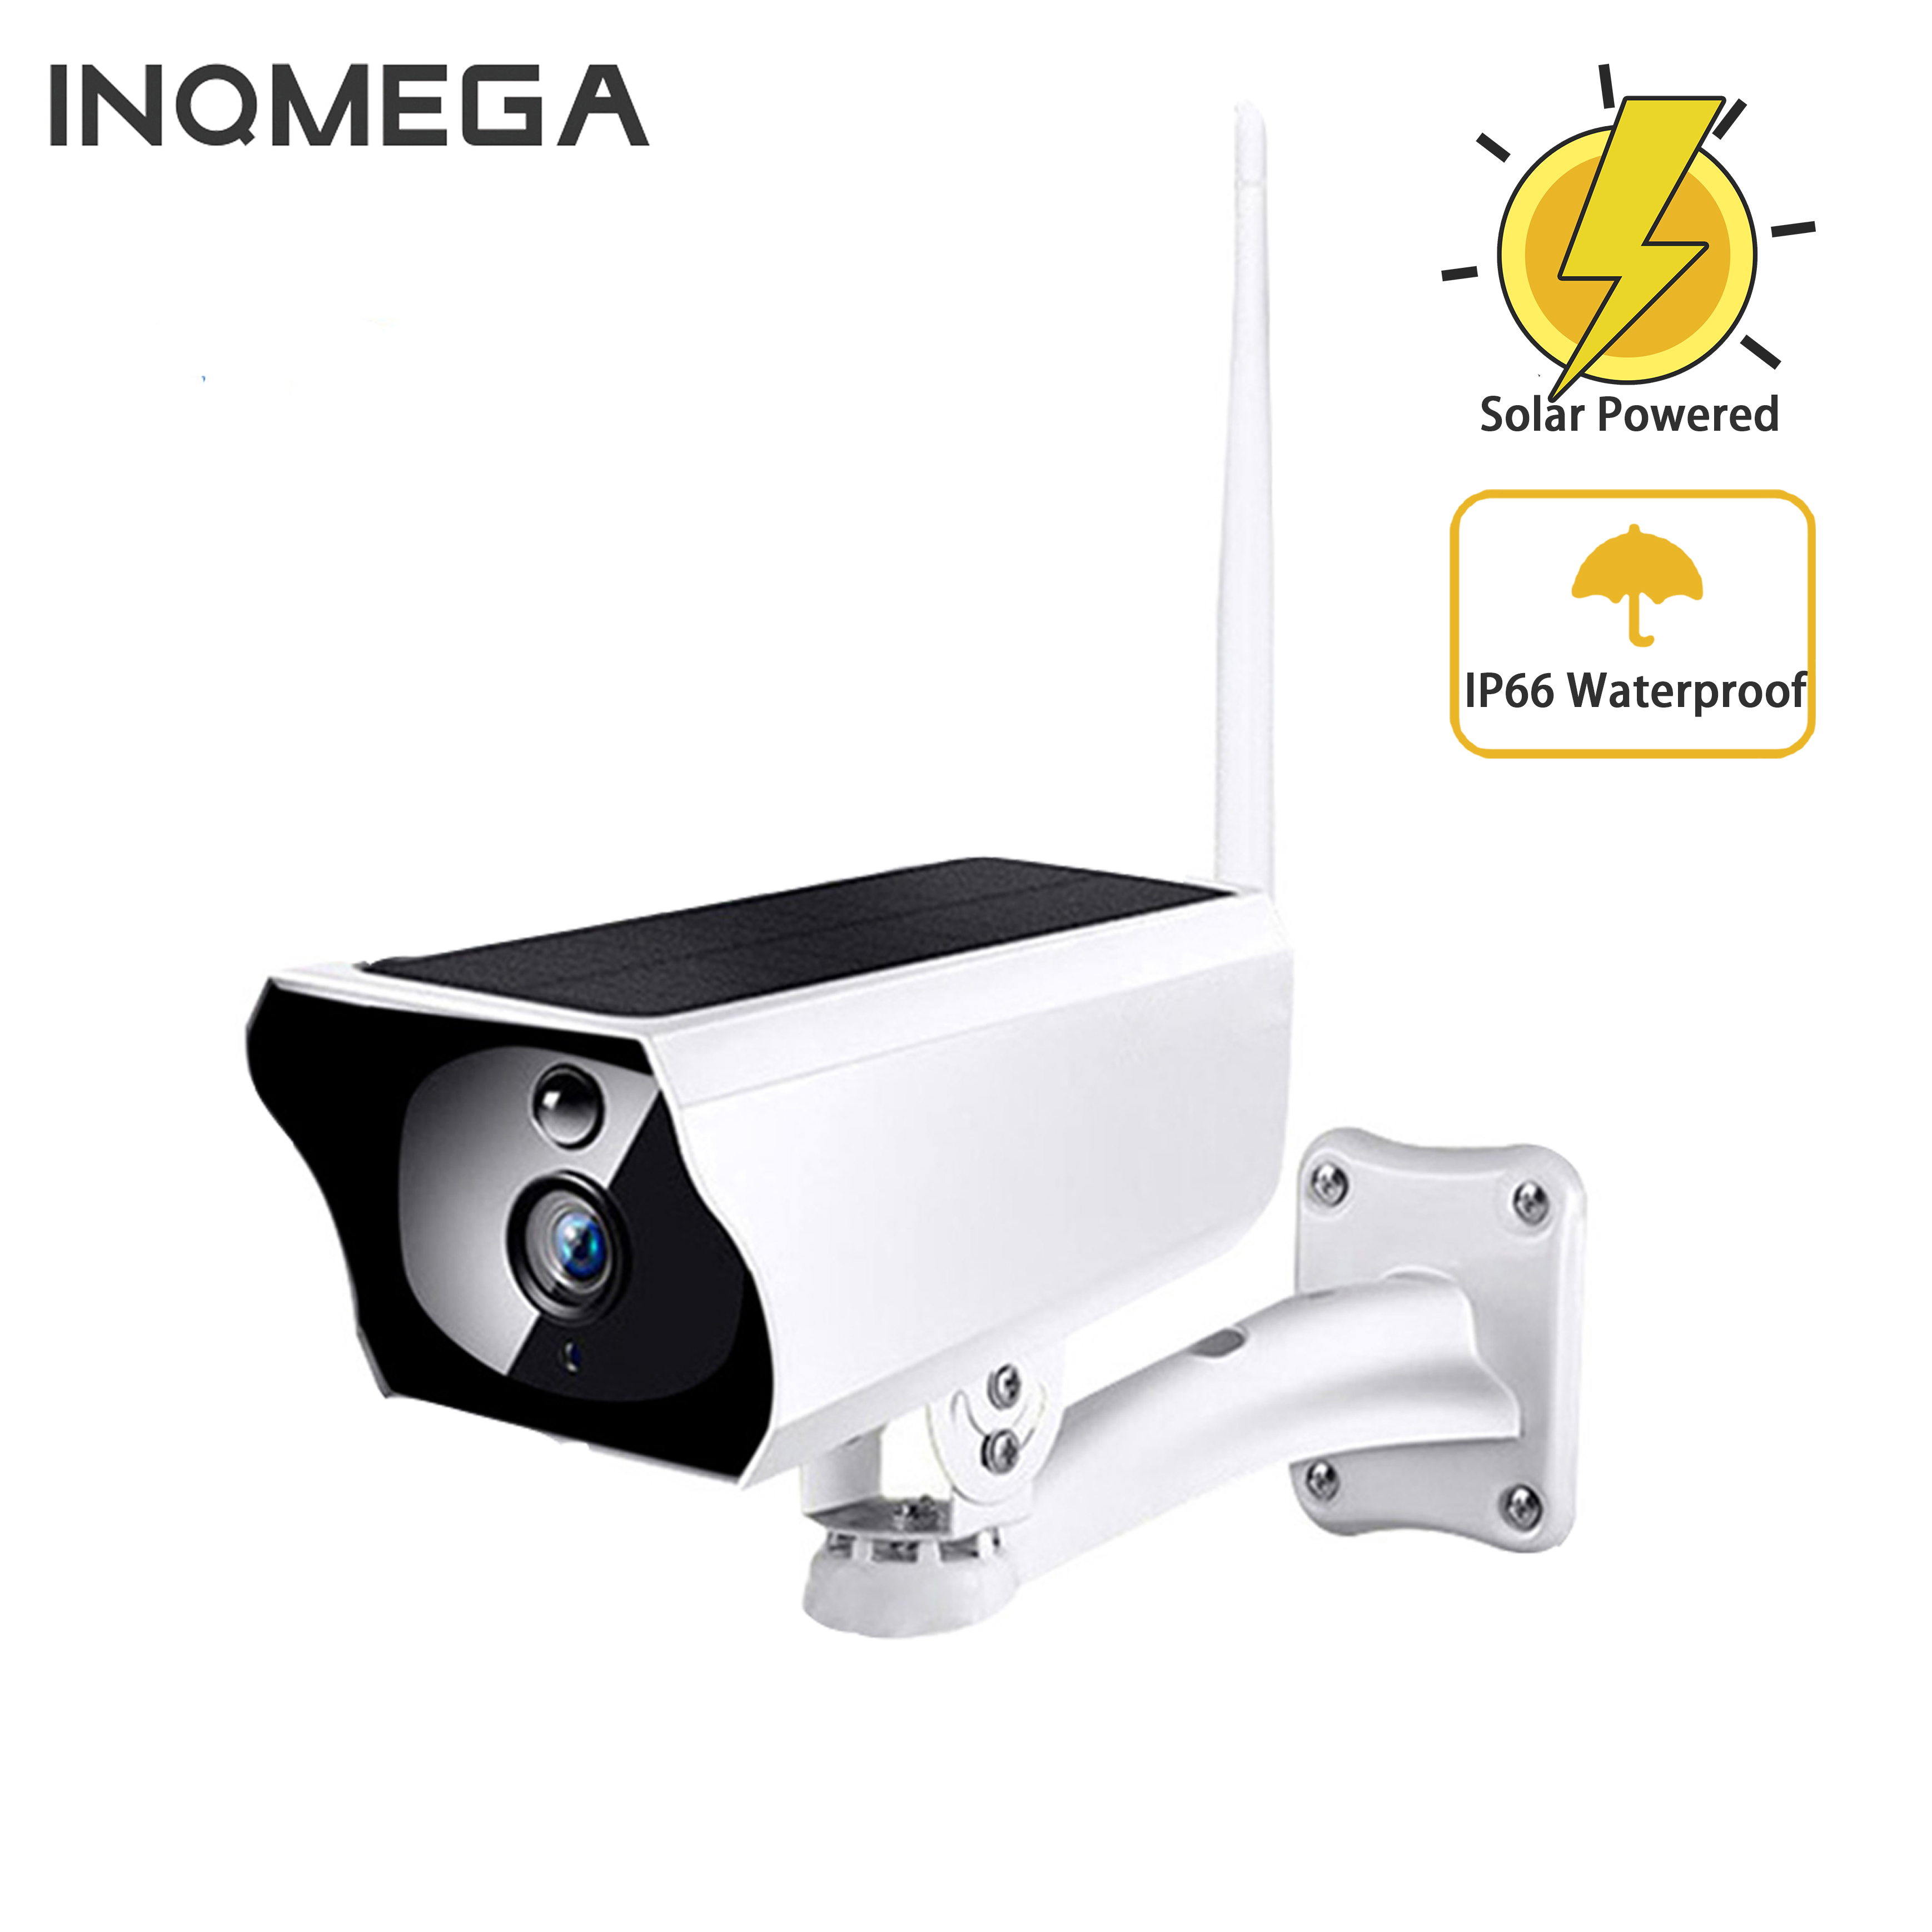 INQMEGA Solar Powered WiFi IP Camera 1080P HD Outdoor Charging Battery Wireless Security Camera PIR Bullet Surveillance CCTV